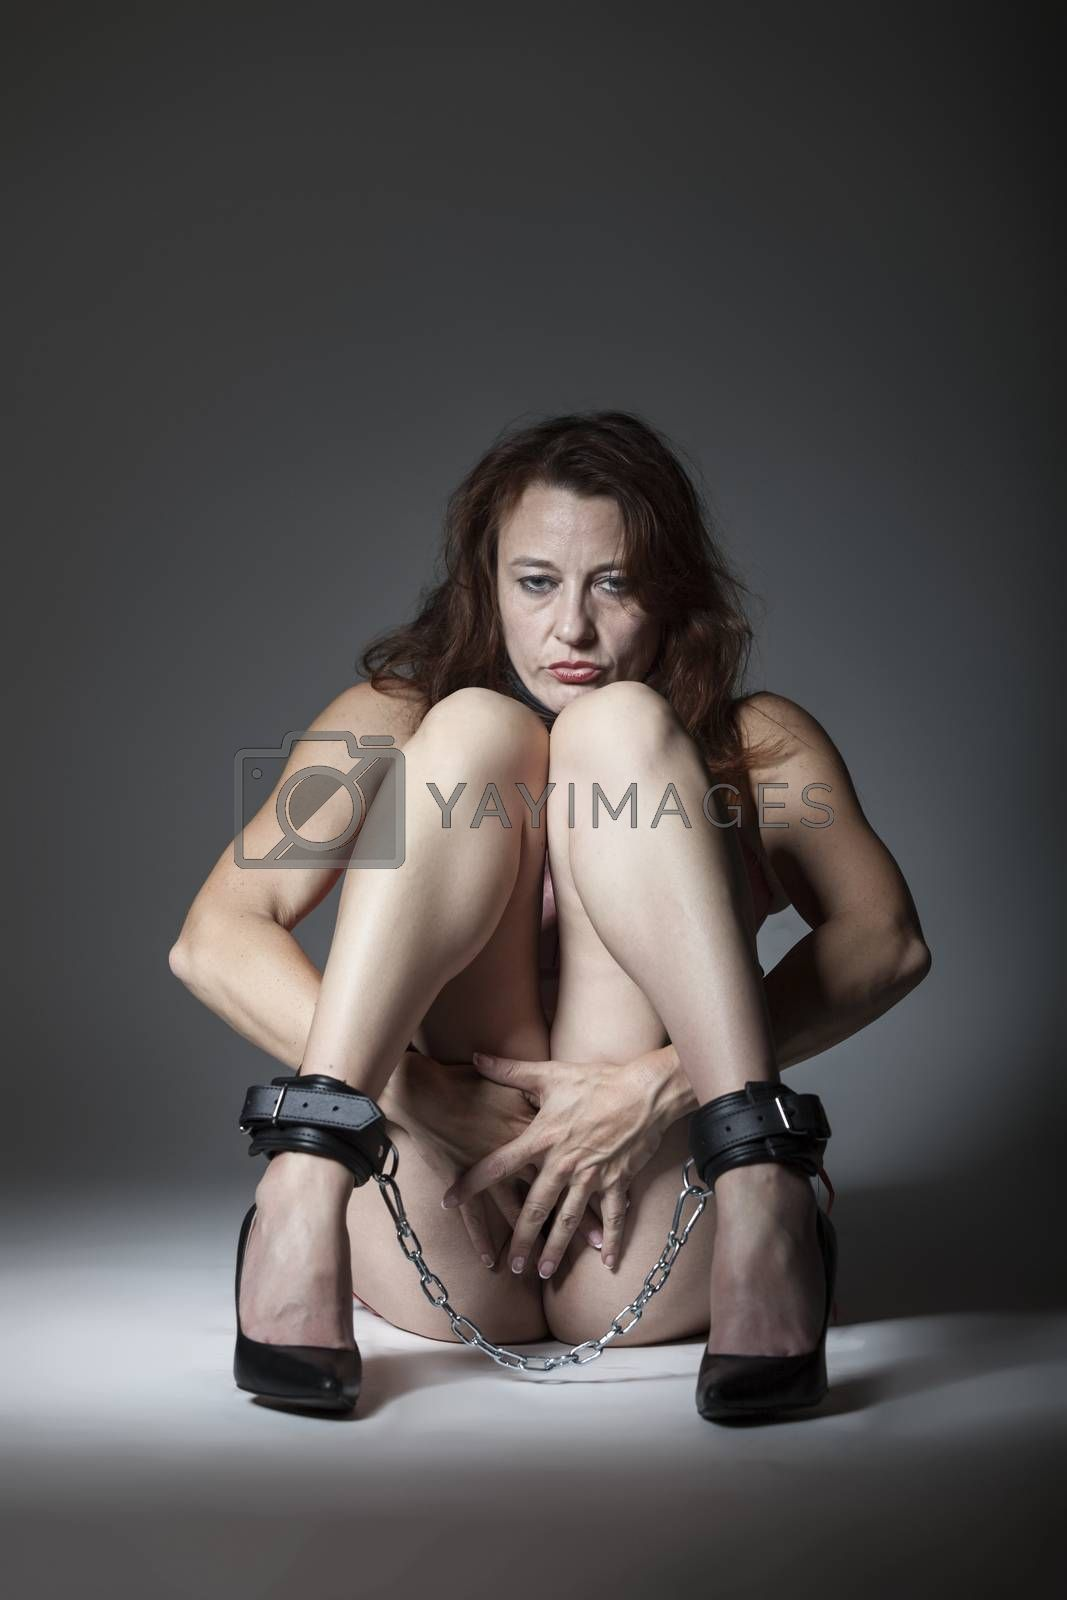 bound woman sitting on the floor